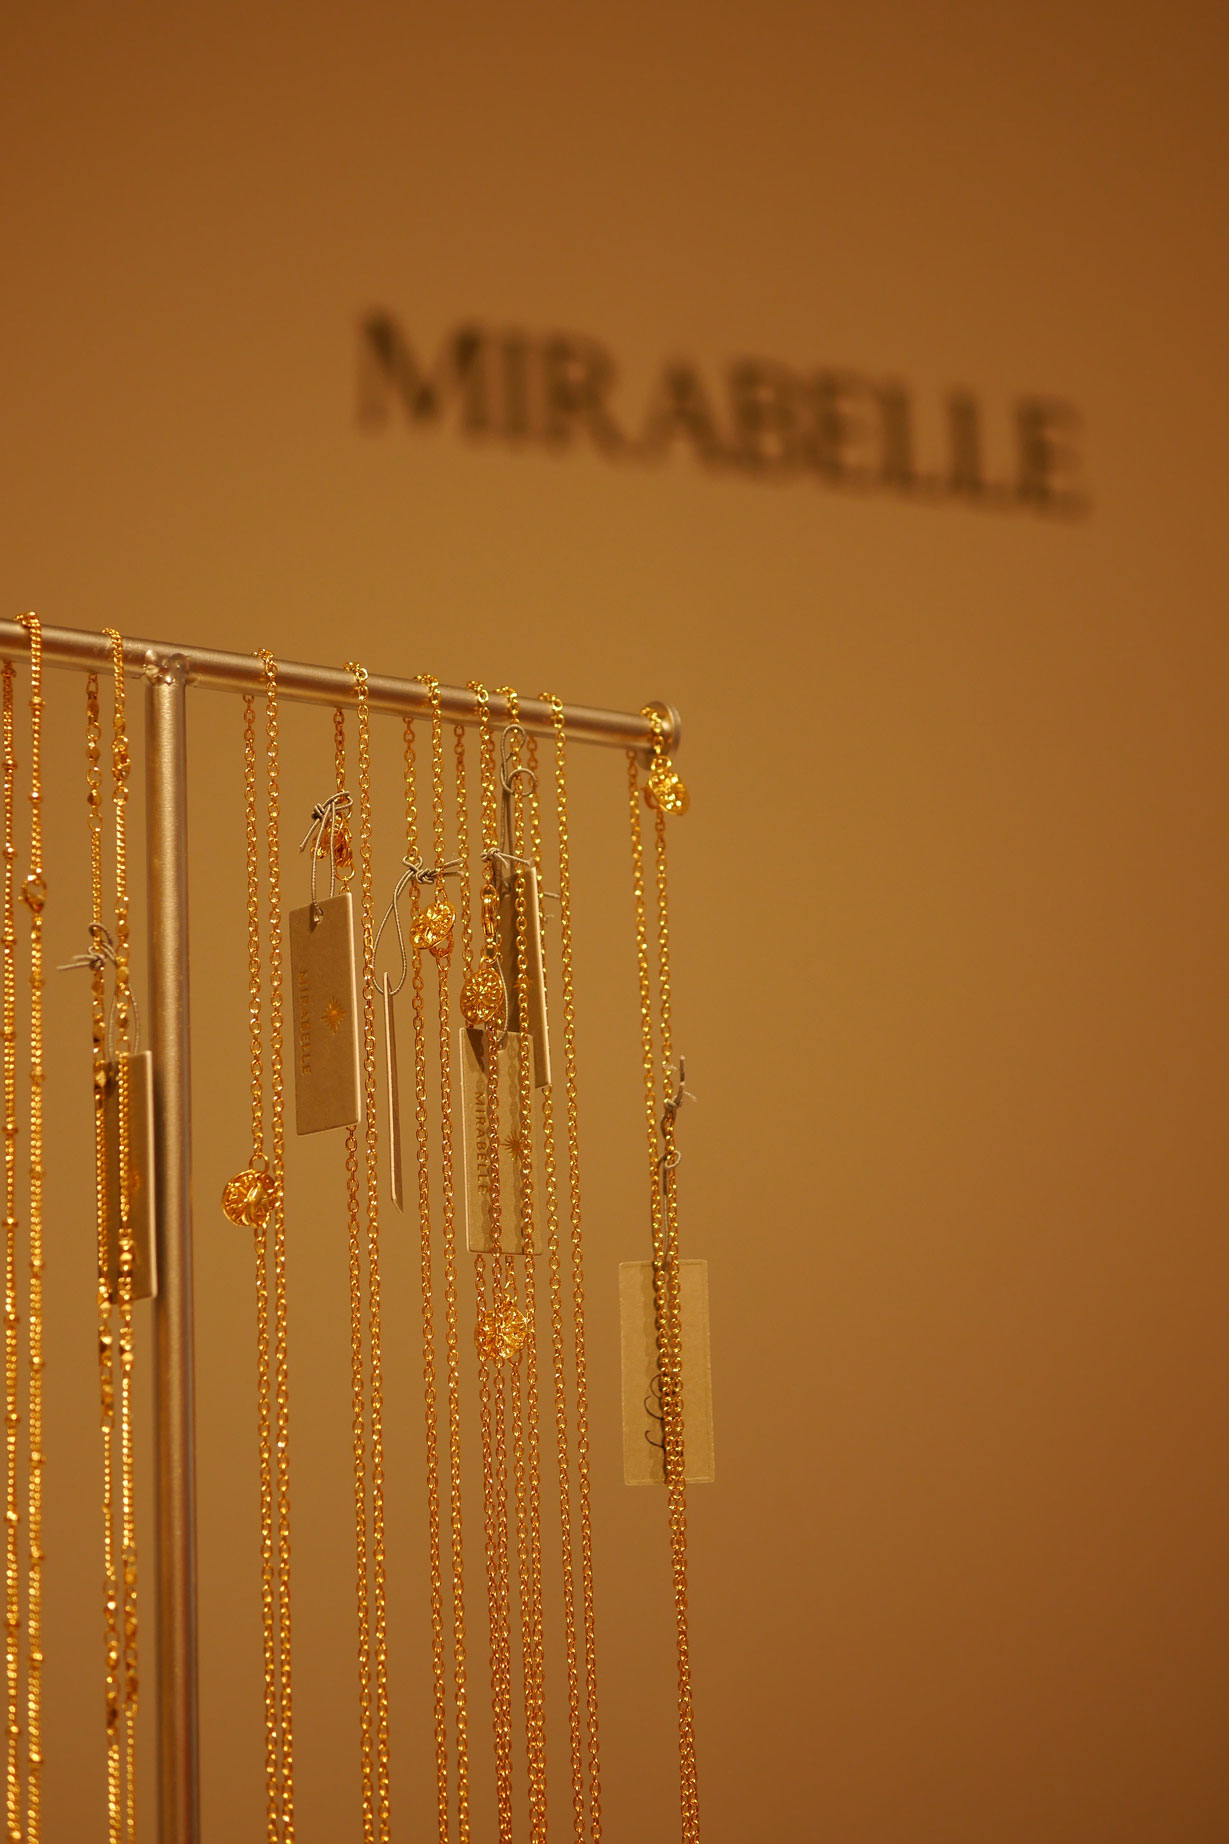 Mirabelle Jewellery , one of my favourite new discoveries this year.